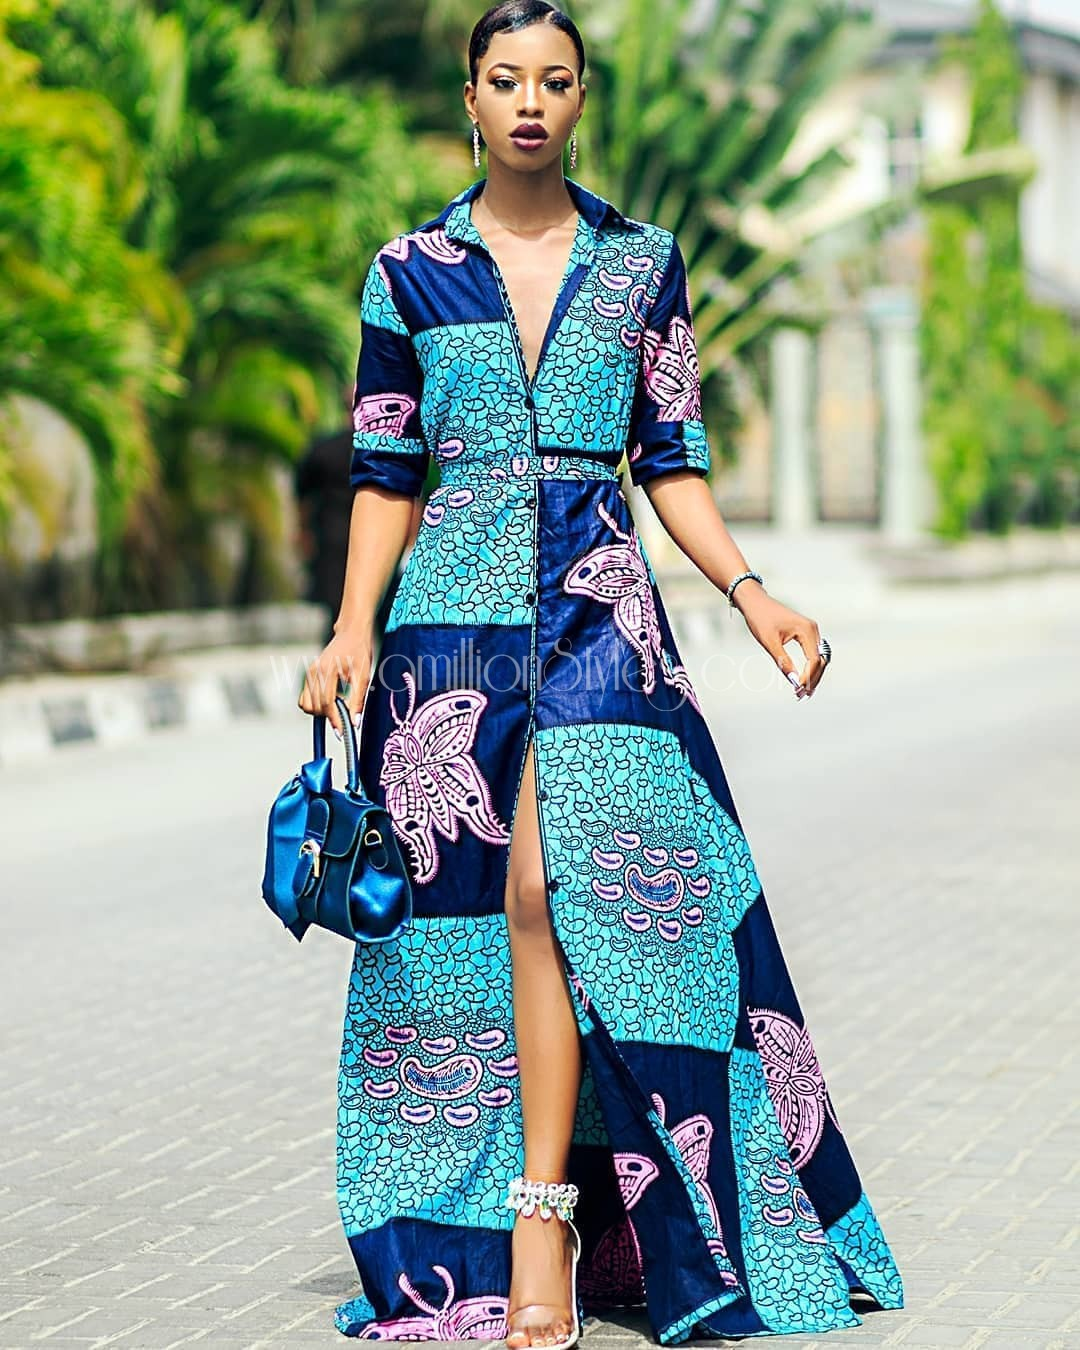 We Are Loving These Chic, Unique Ankara Styles